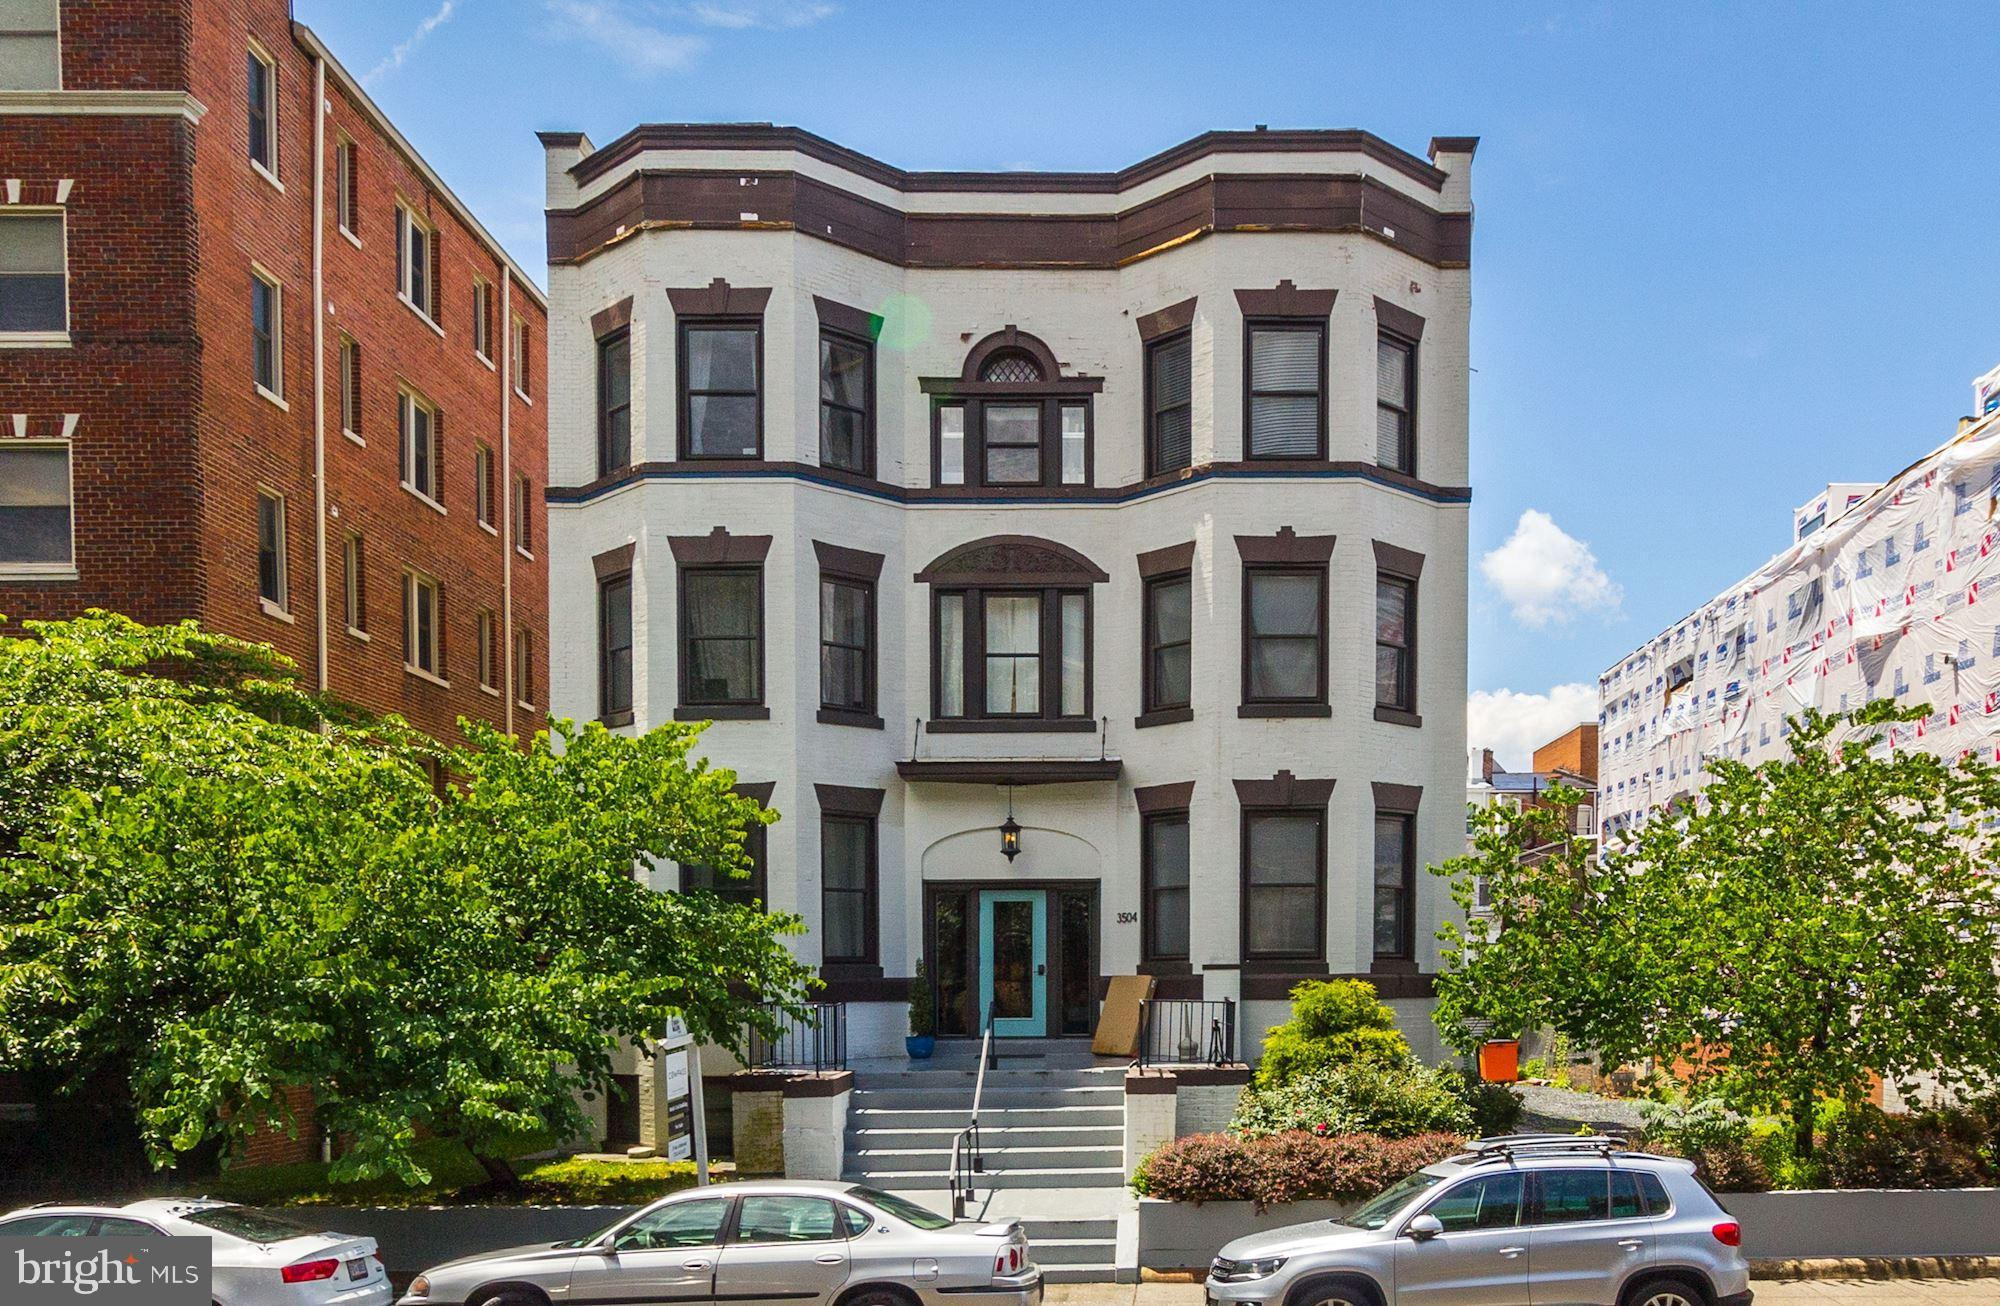 Welcome to 3504 13th Street NW, a beautiful boutique building located in the heart of Columbia Heigh